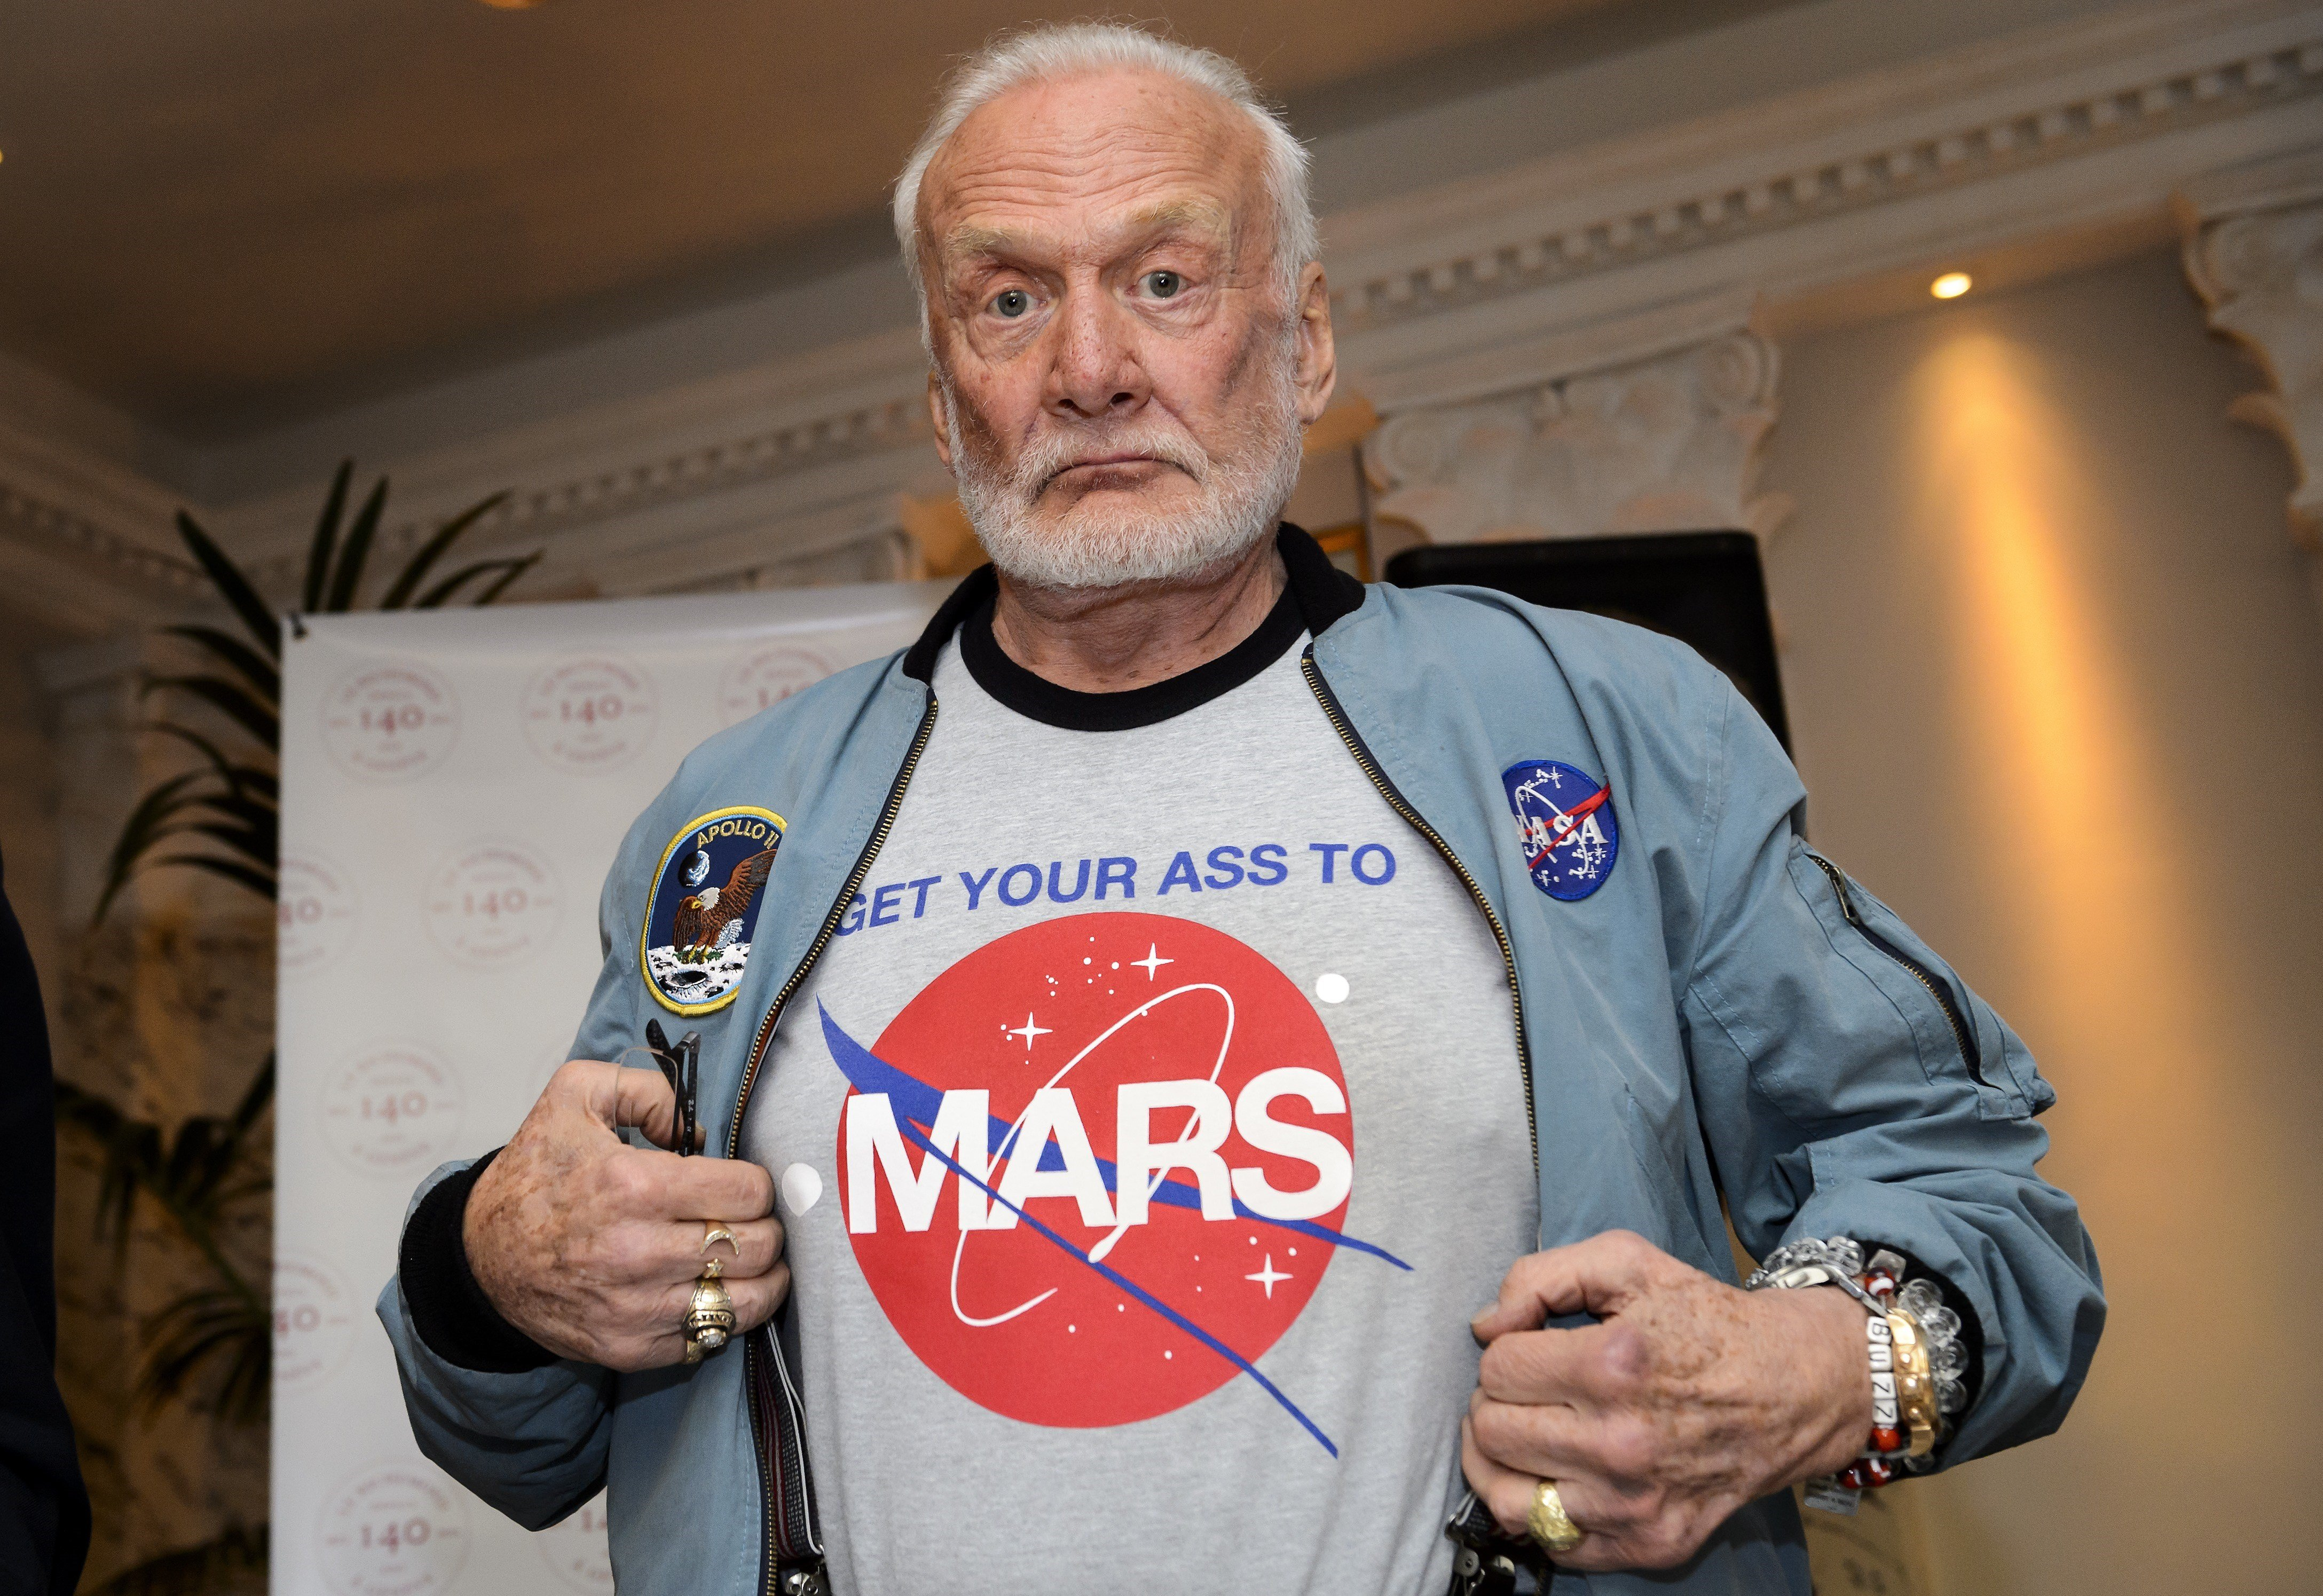 Aldrin claims that he saw UFO, online publications hatch counter conspiracy plots